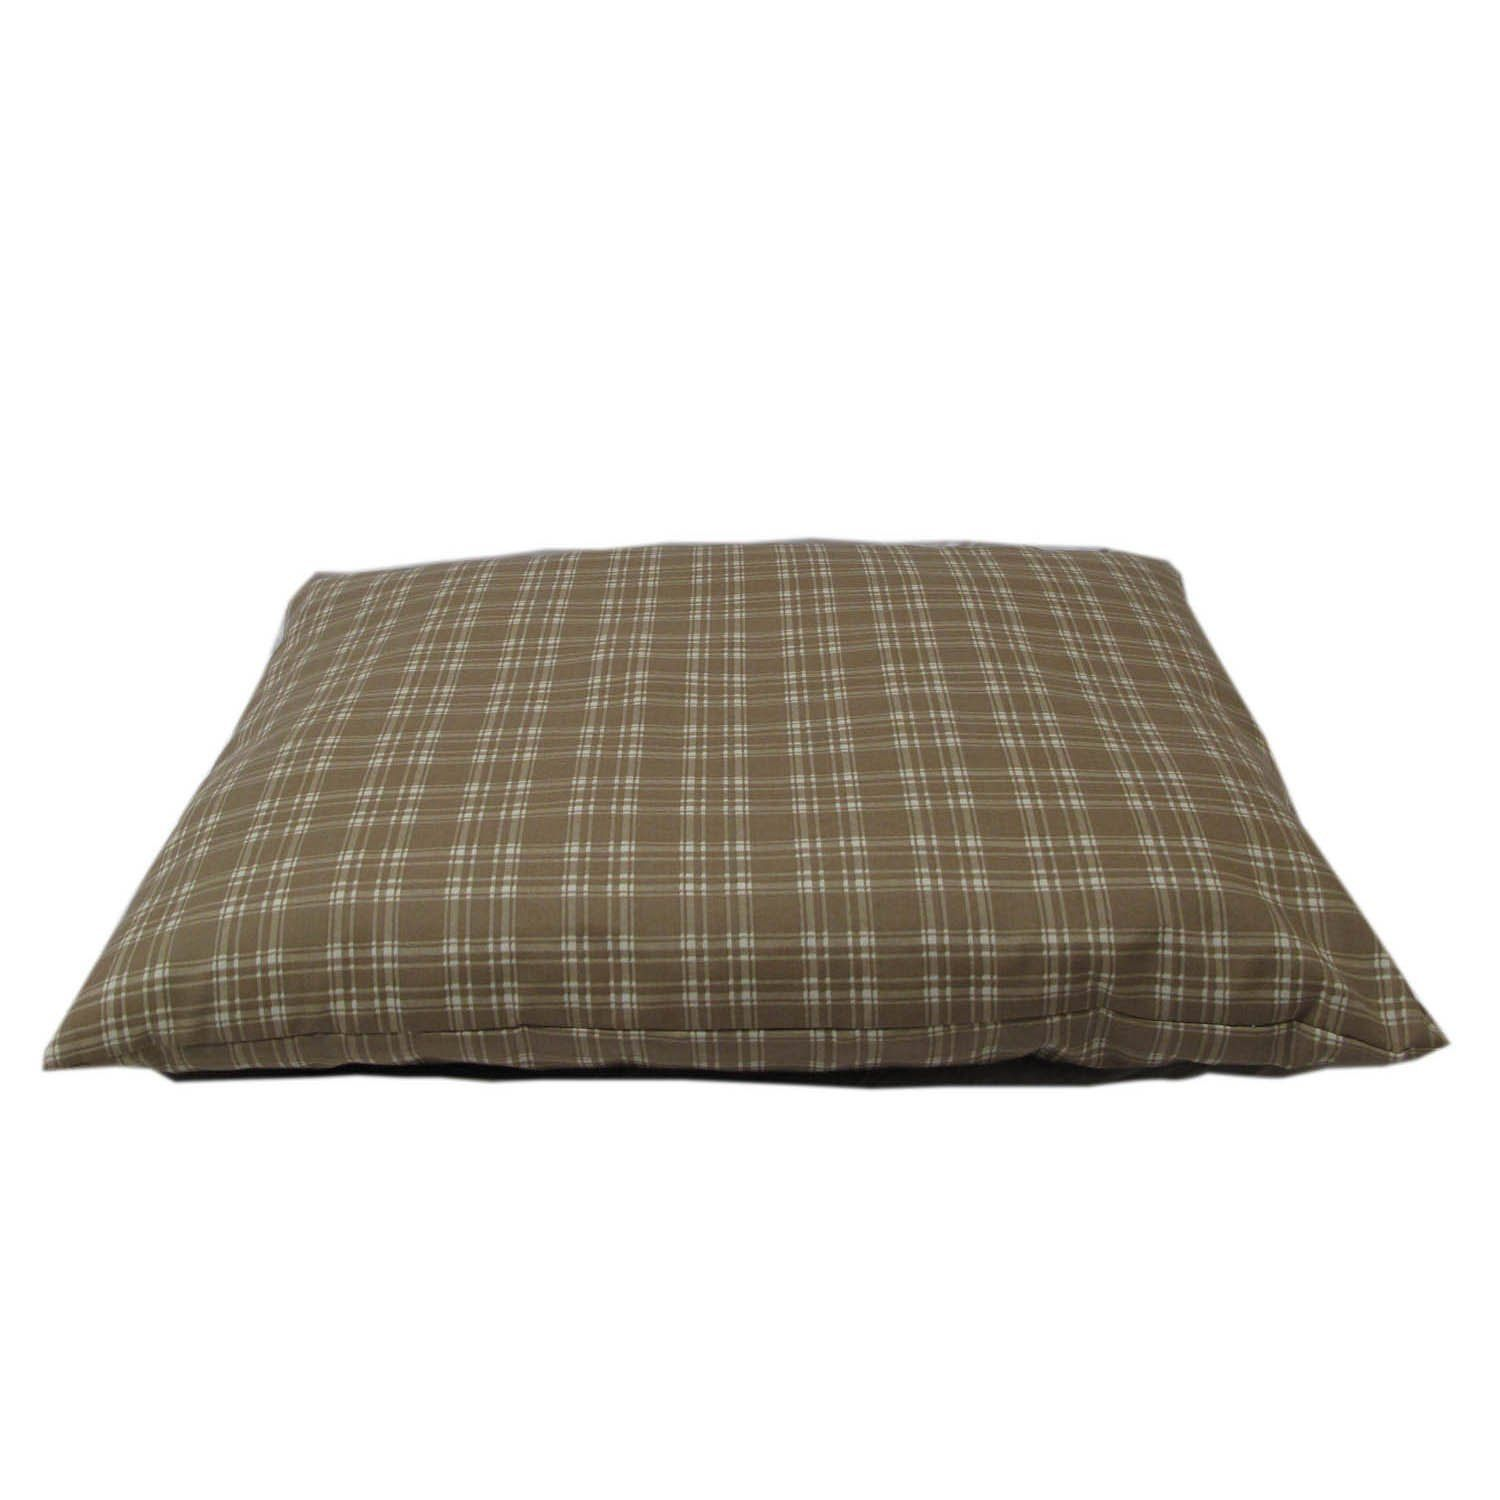 Carolina Cat Co Indoor Outdoor Shebang Cat Bed Green Plaid Trust Me This Is Great Click The Image C Outdoor Pet Bed Cat Bed Furniture Pet Companies